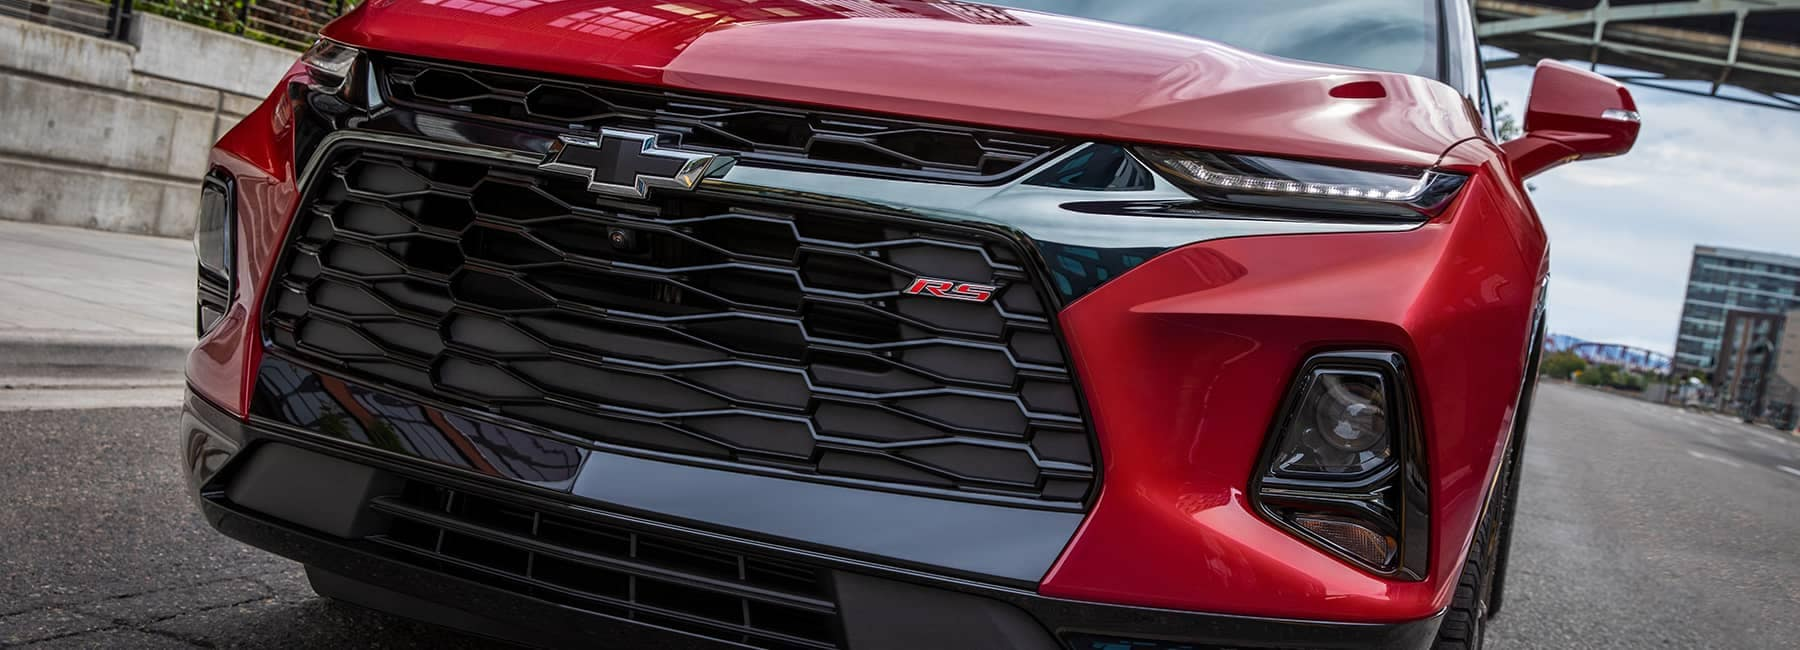 Red 2020 Blazer Front Grille